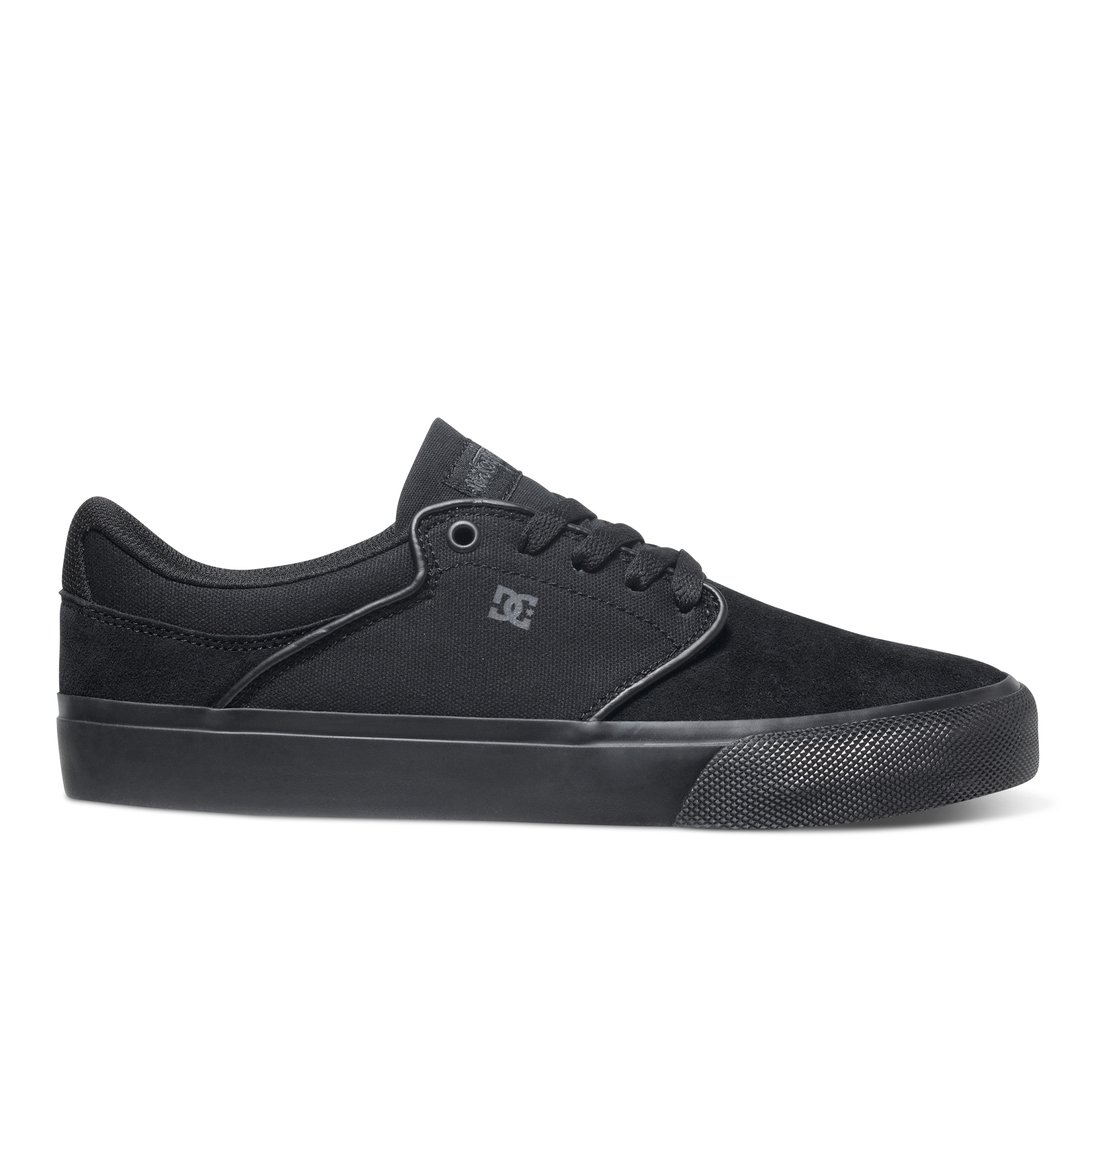 Dc Mikey Taylor Vulc- Black trainers